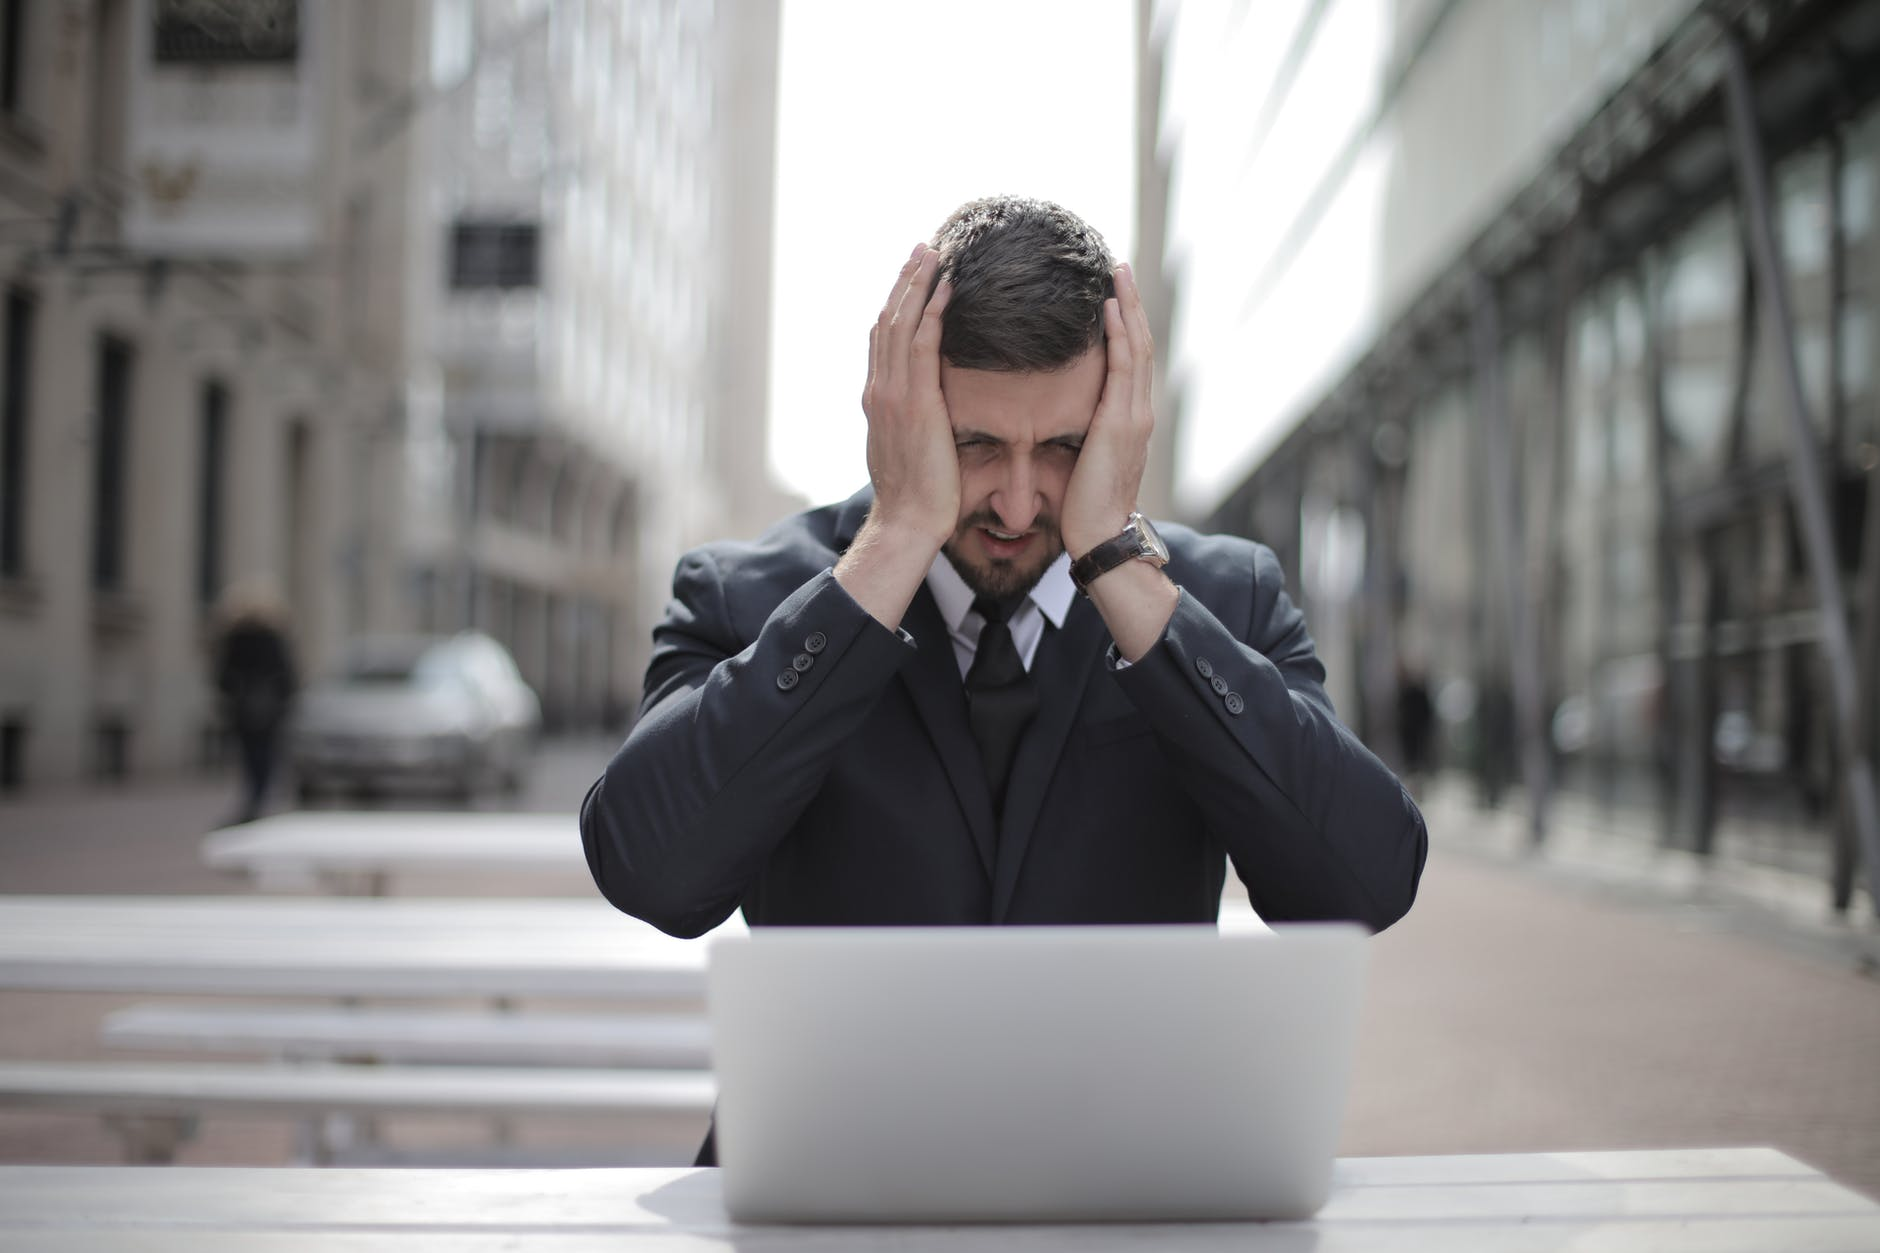 Stressed man in a suit in front of his laptop   Source: Pexels